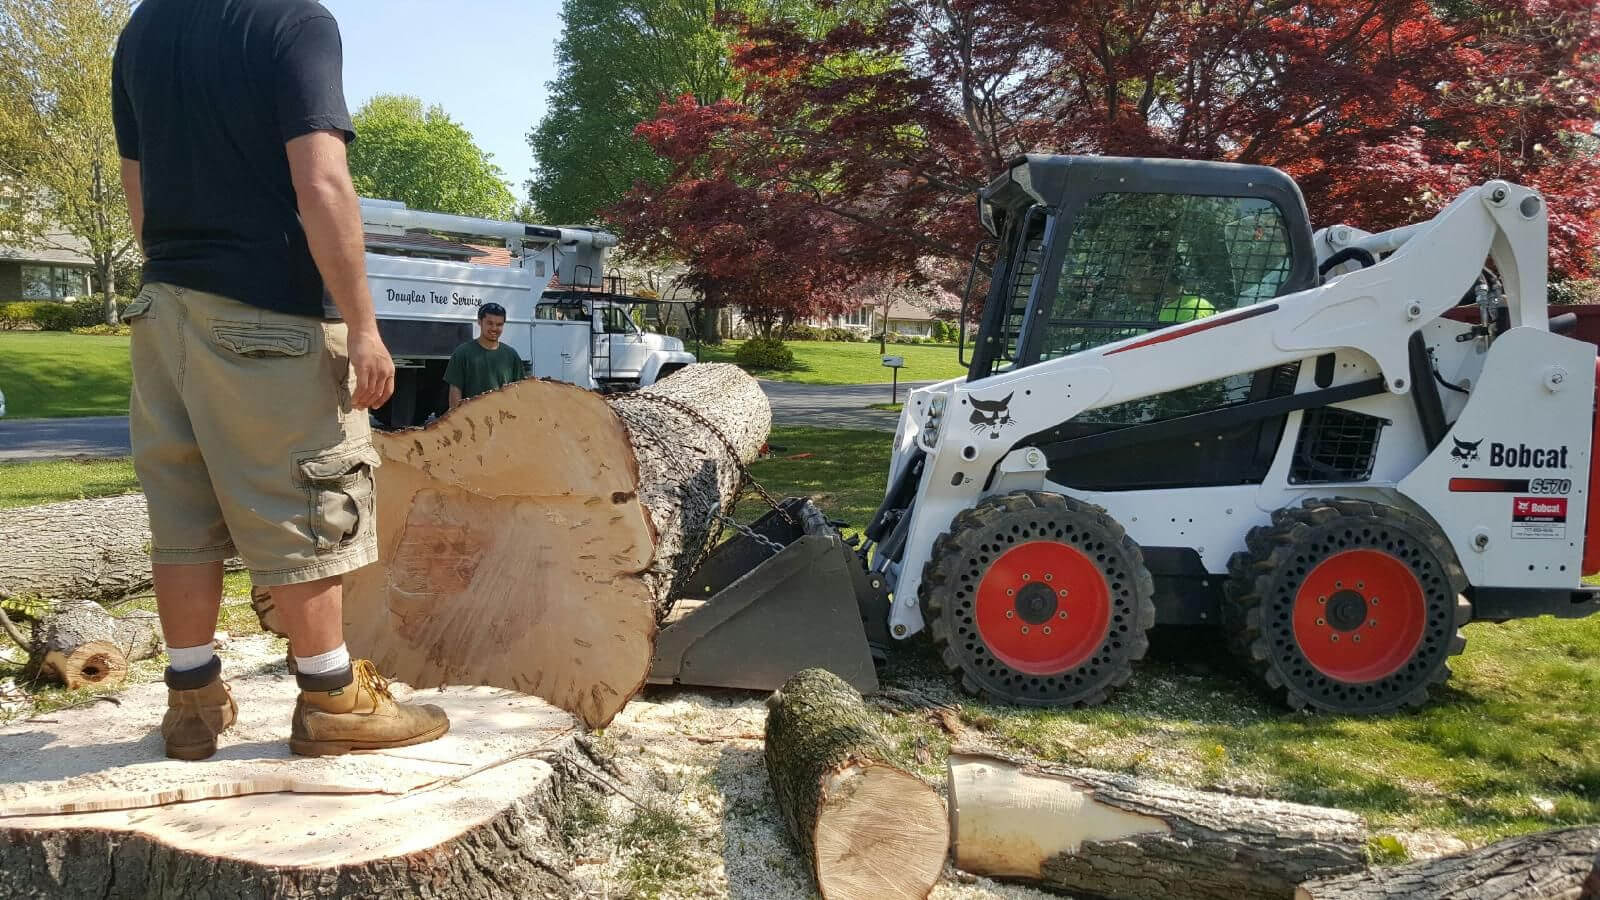 Services-Myrtle Beach Tree Trimming and Stump Grinding Services-We Offer Tree Trimming Services, Tree Removal, Tree Pruning, Tree Cutting, Residential and Commercial Tree Trimming Services, Storm Damage, Emergency Tree Removal, Land Clearing, Tree Companies, Tree Care Service, Stump Grinding, and we're the Best Tree Trimming Company Near You Guaranteed!